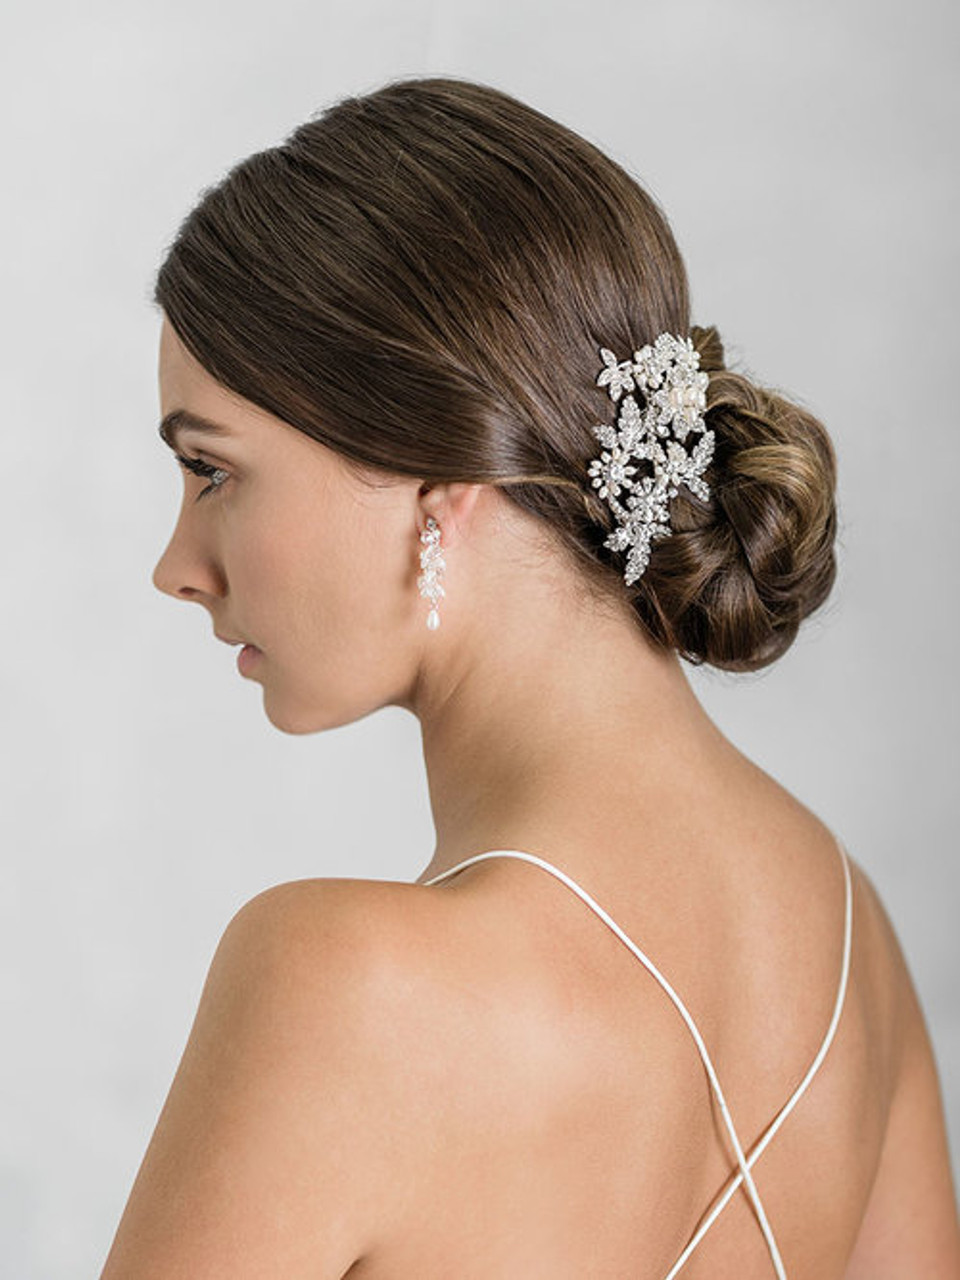 Bel Aire 6919 - Classic comb of freshwater pearl flowers and rhinestone leaves